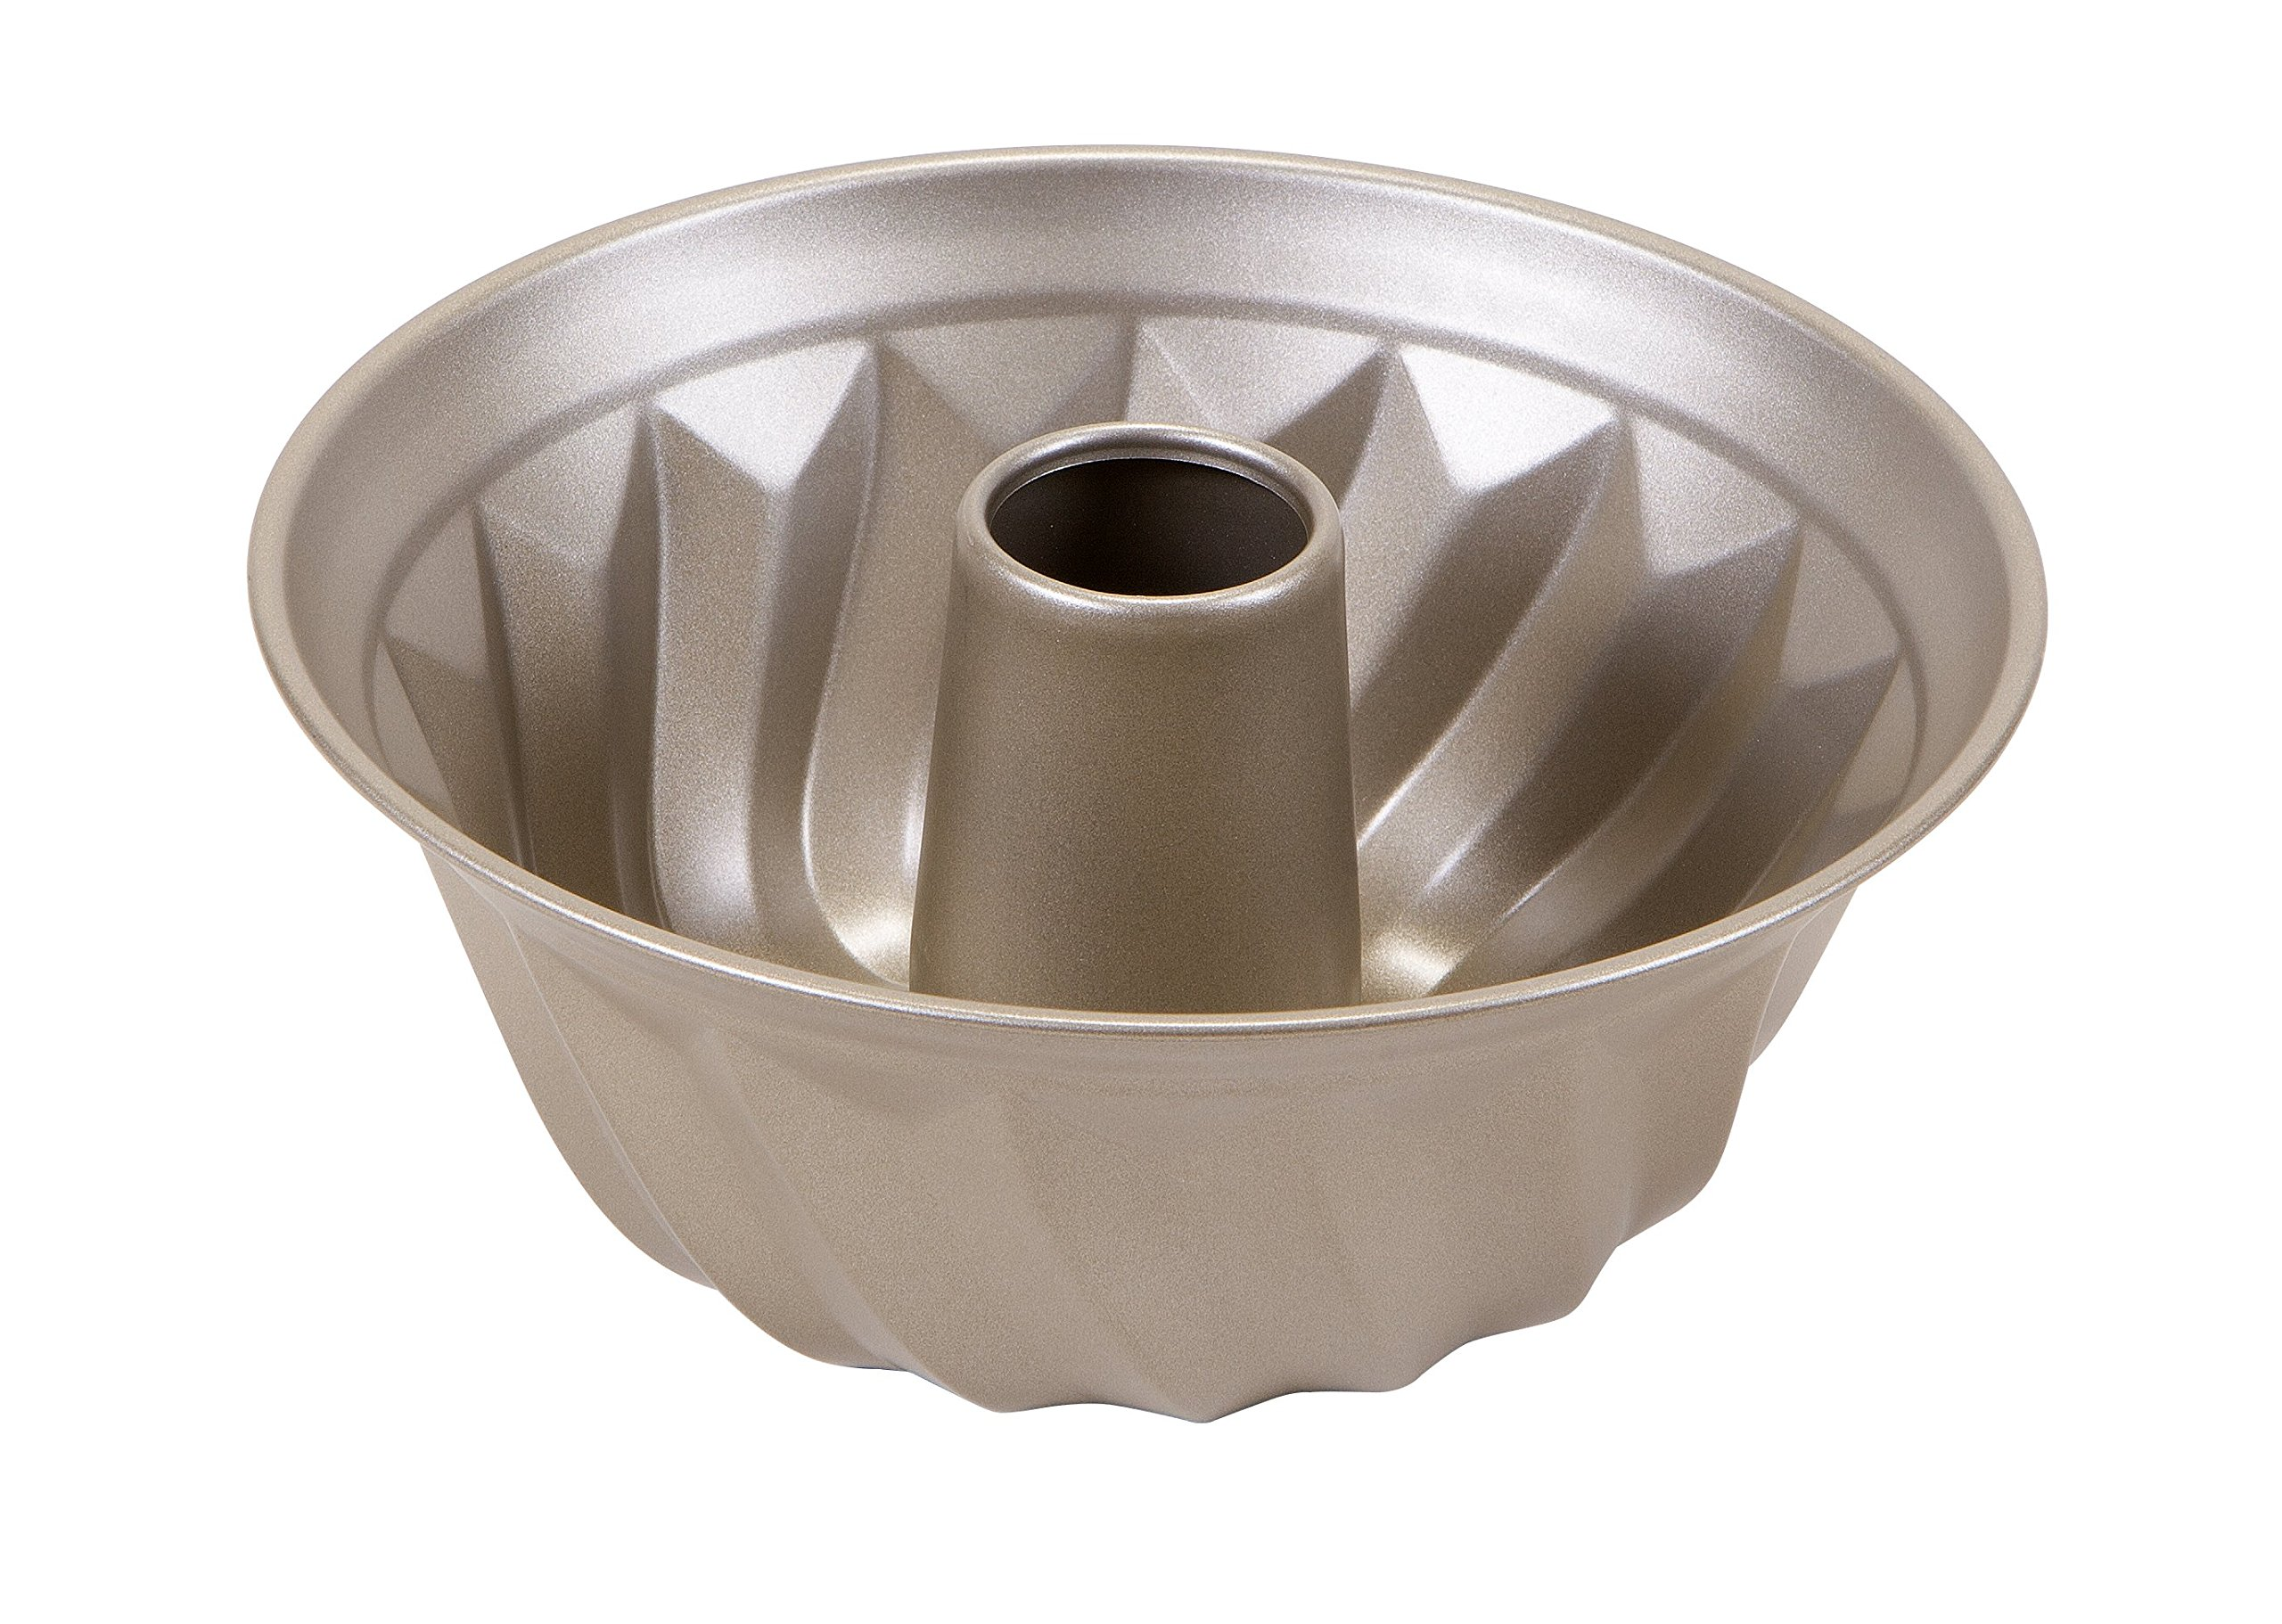 Art and Cook Non-Stick Carbon Steel Bundt Form Pan, 9.5'', Champagne